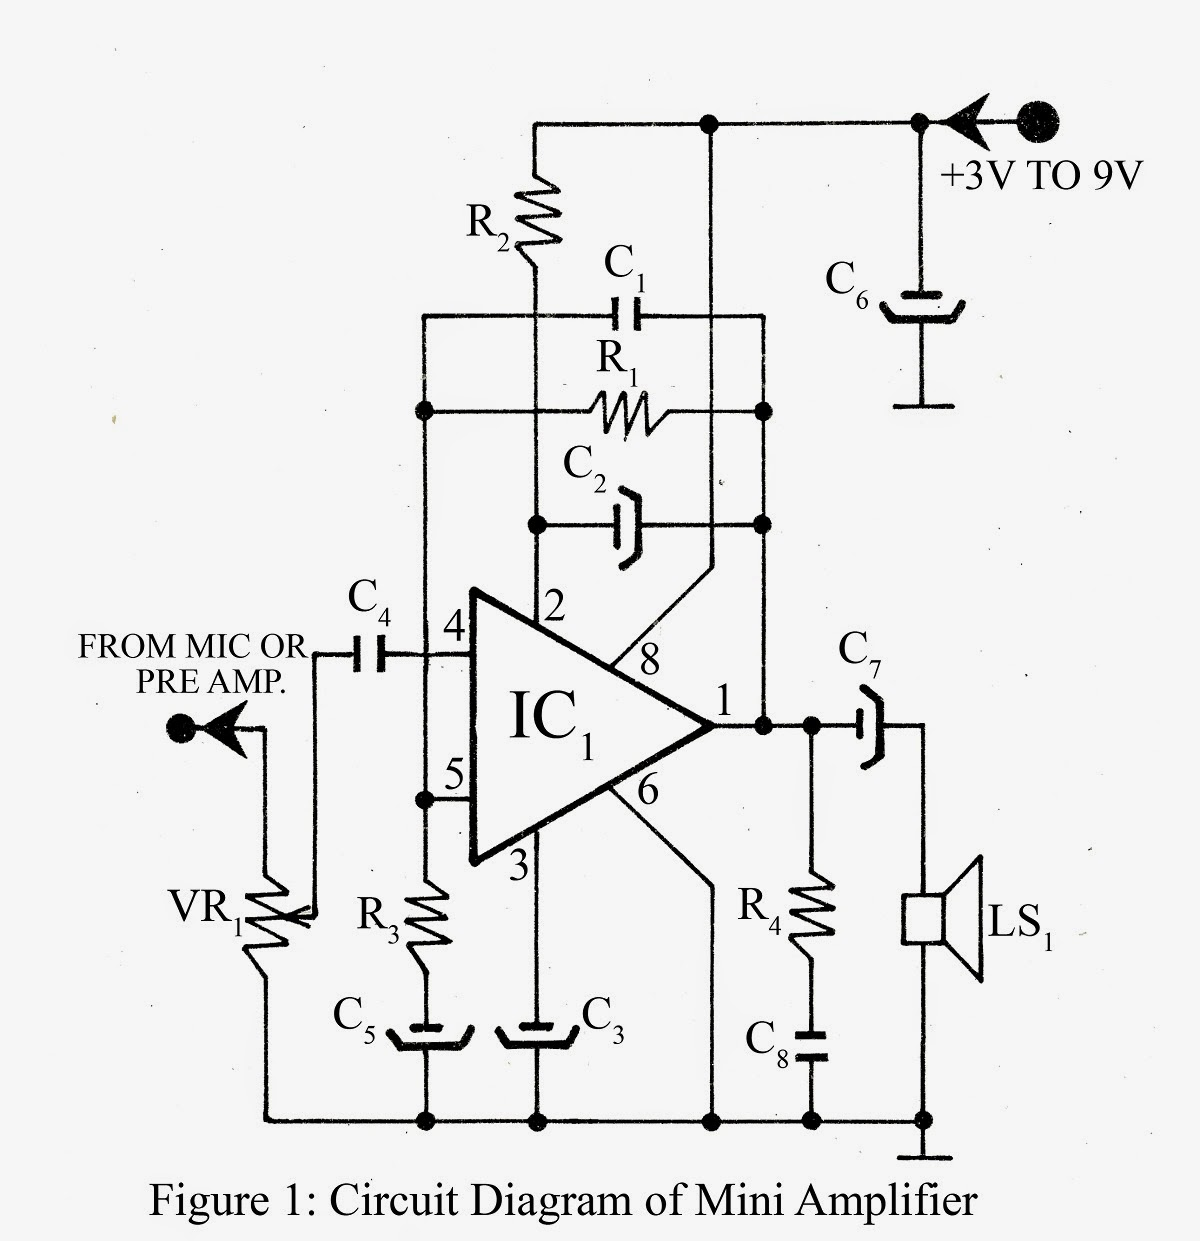 Amplifier Circuit Diagram Projects Diy Enthusiasts Wiring Diagrams 1000w Power Images Mini Electronic Ic Based Audio Rh Circuitsarena Com High